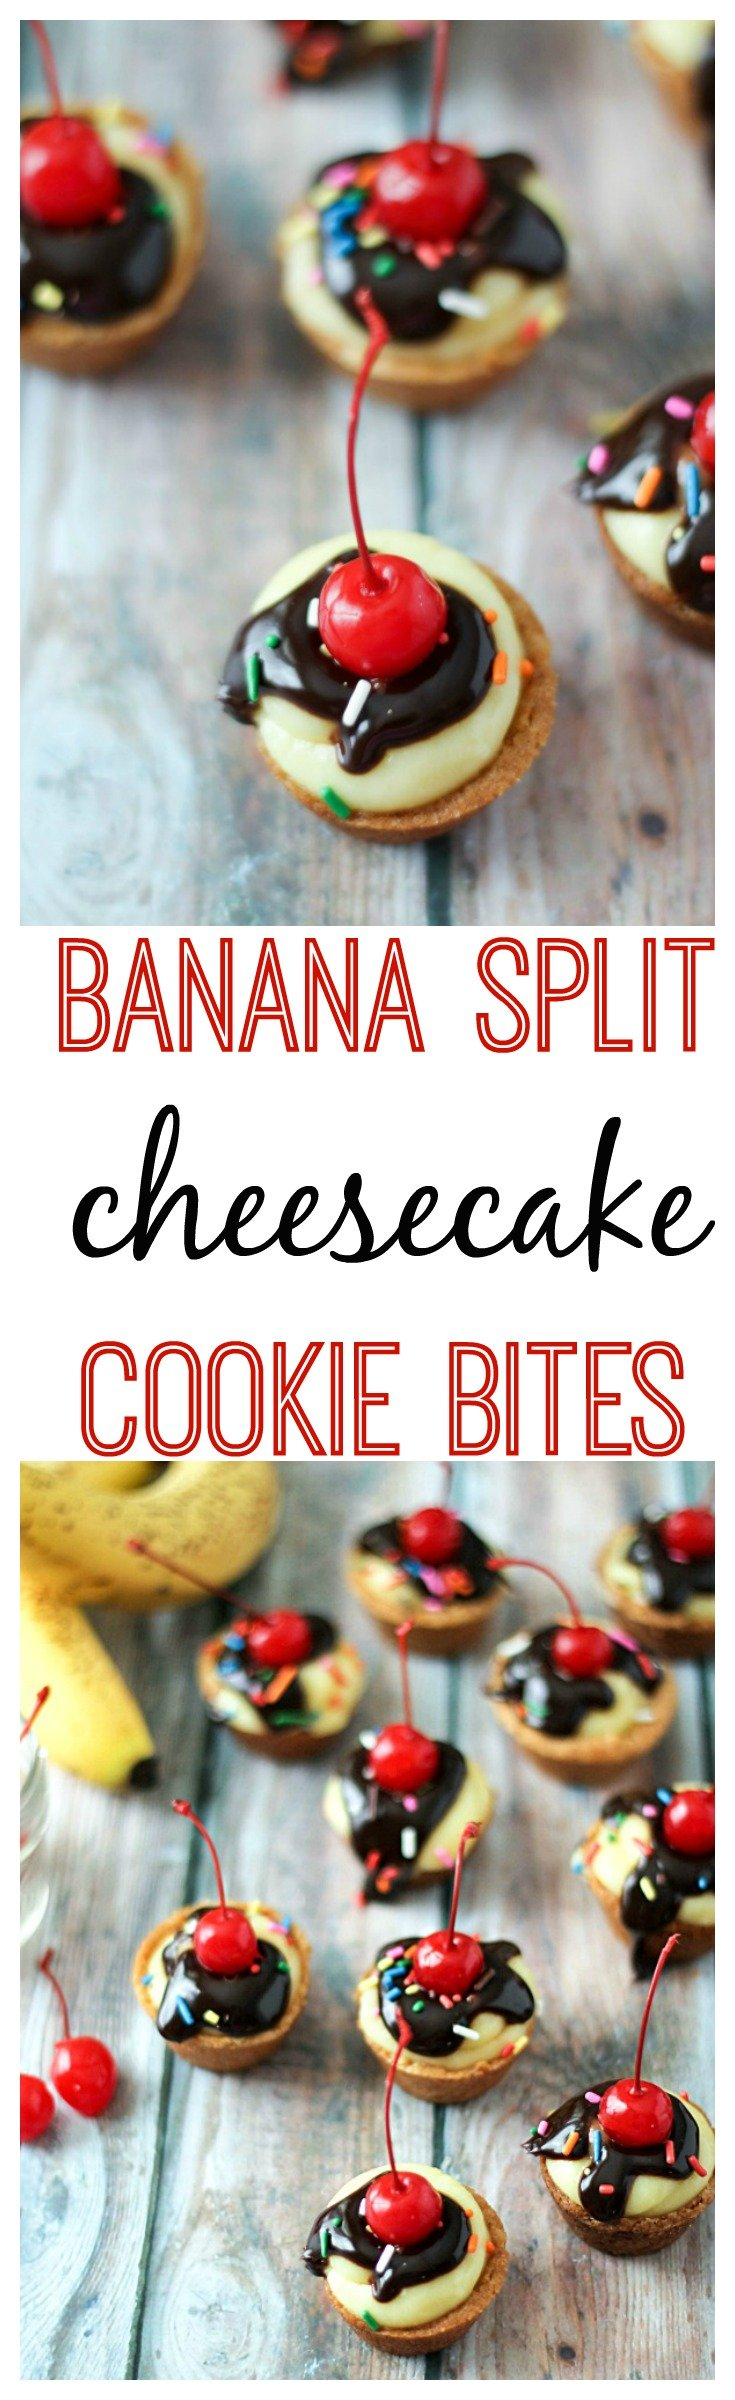 Banana Split Cheesecake Cookie Bites